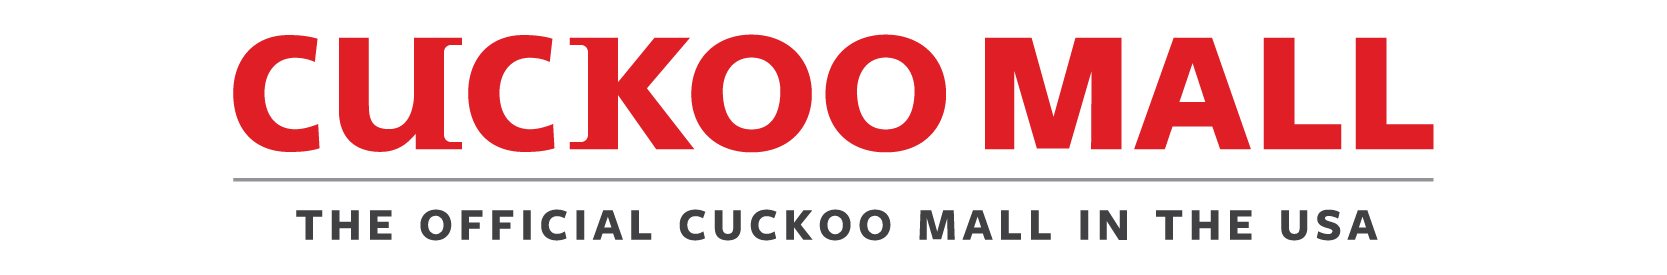 Cuckoo Mall Coupons